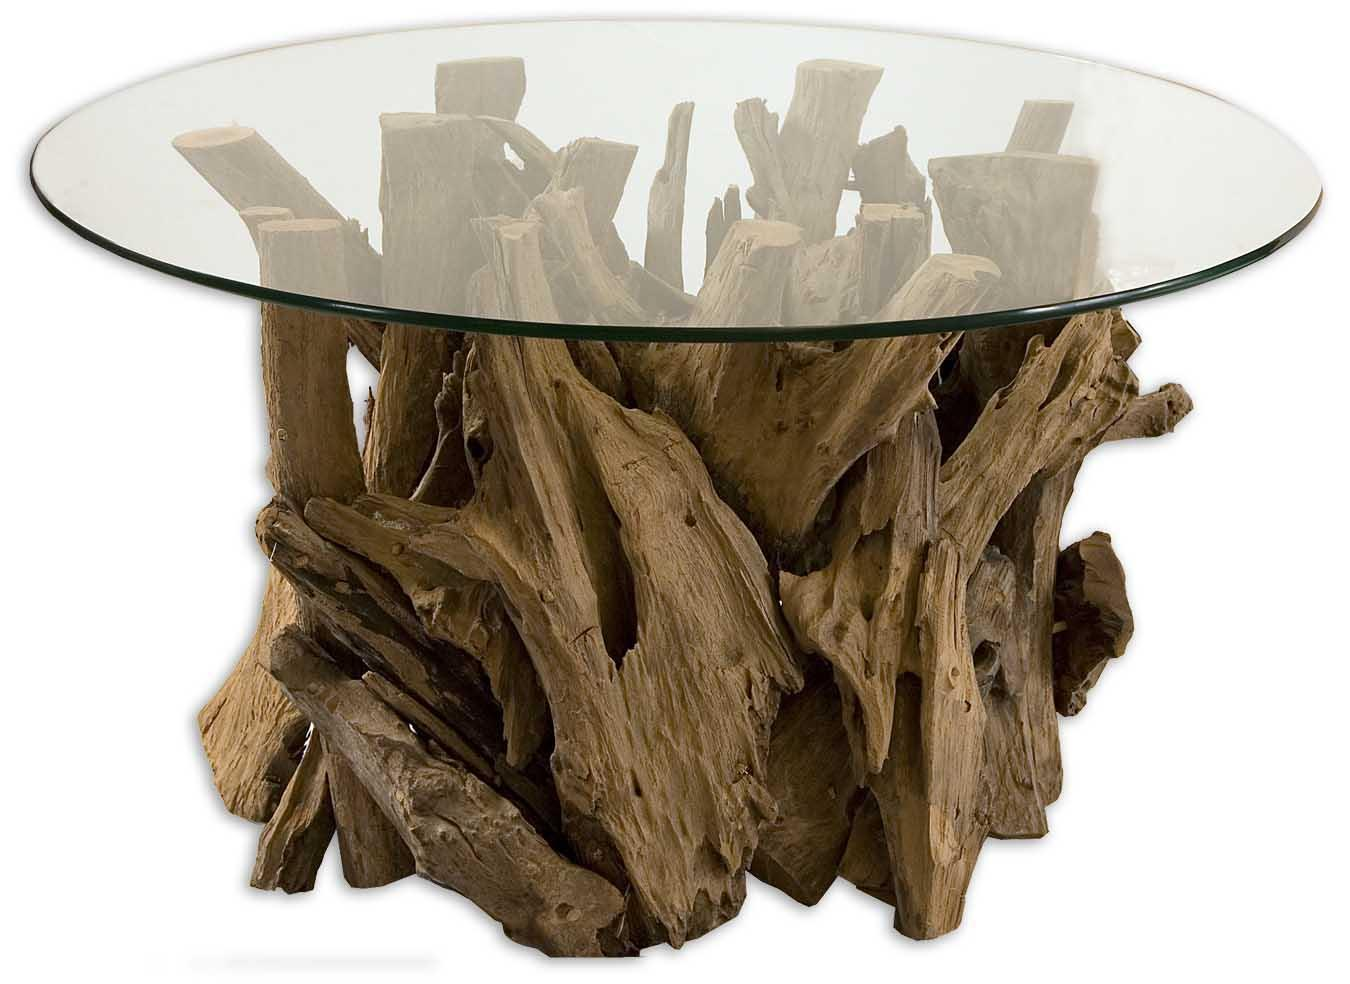 Uttermost Accent Furniture Occasional Tables Driftwood Cocktail Table For Beach House Cabin Furniture Johnny Janosik Cocktail Coffee Tables